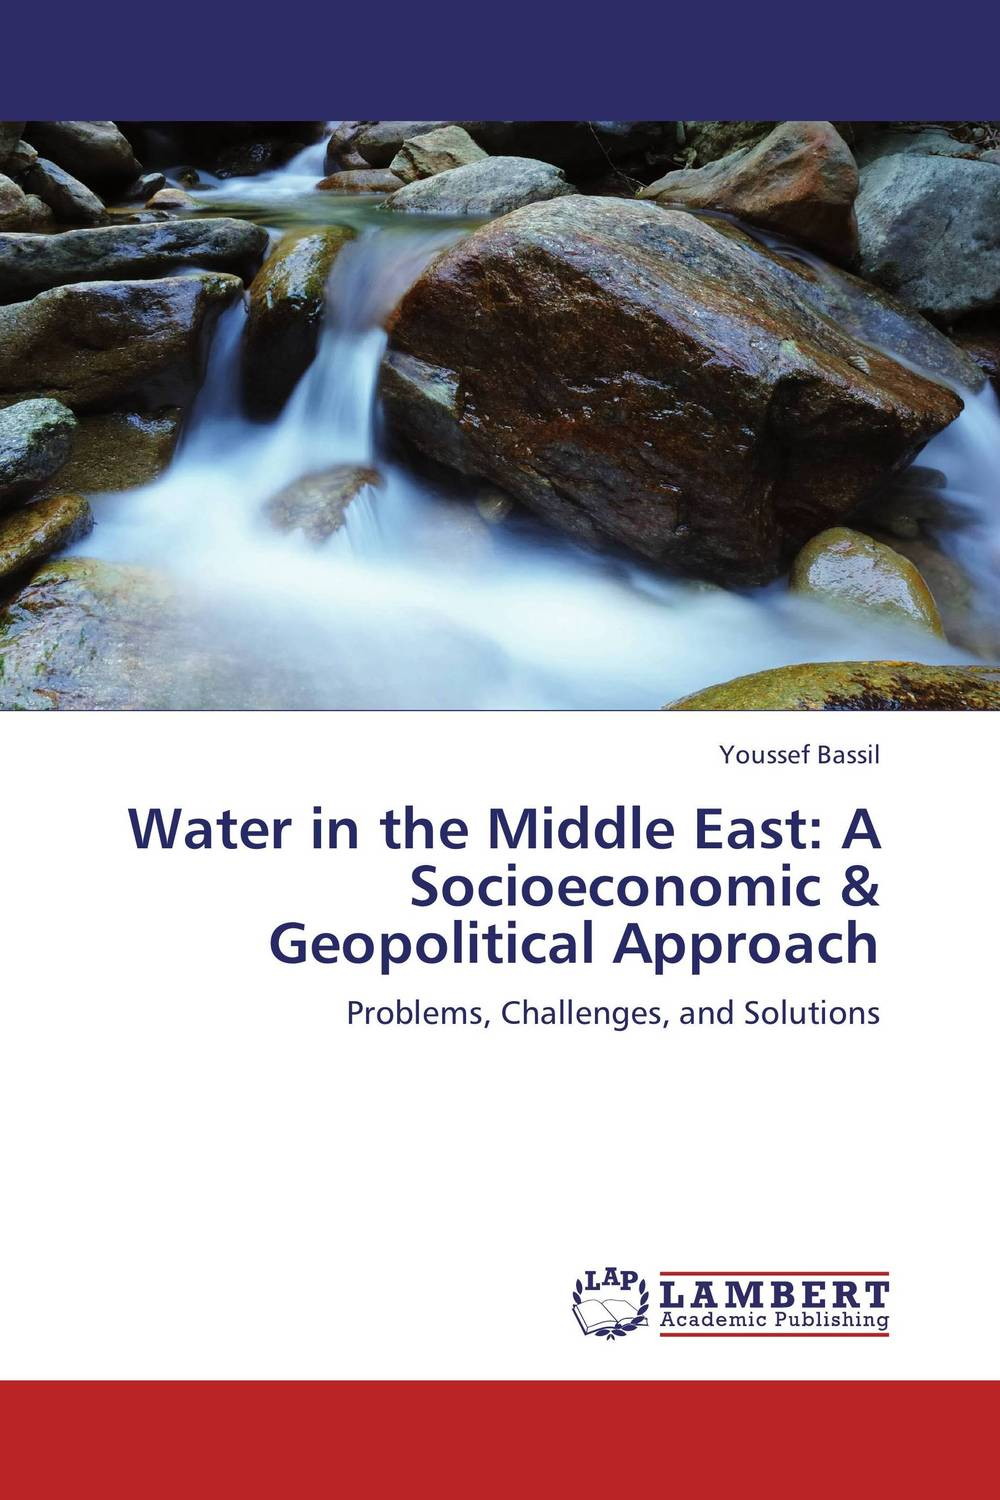 Water in the Middle East: A Socioeconomic & Geopolitical Approach marc lane j the mission driven venture business solutions to the world s most vexing social problems